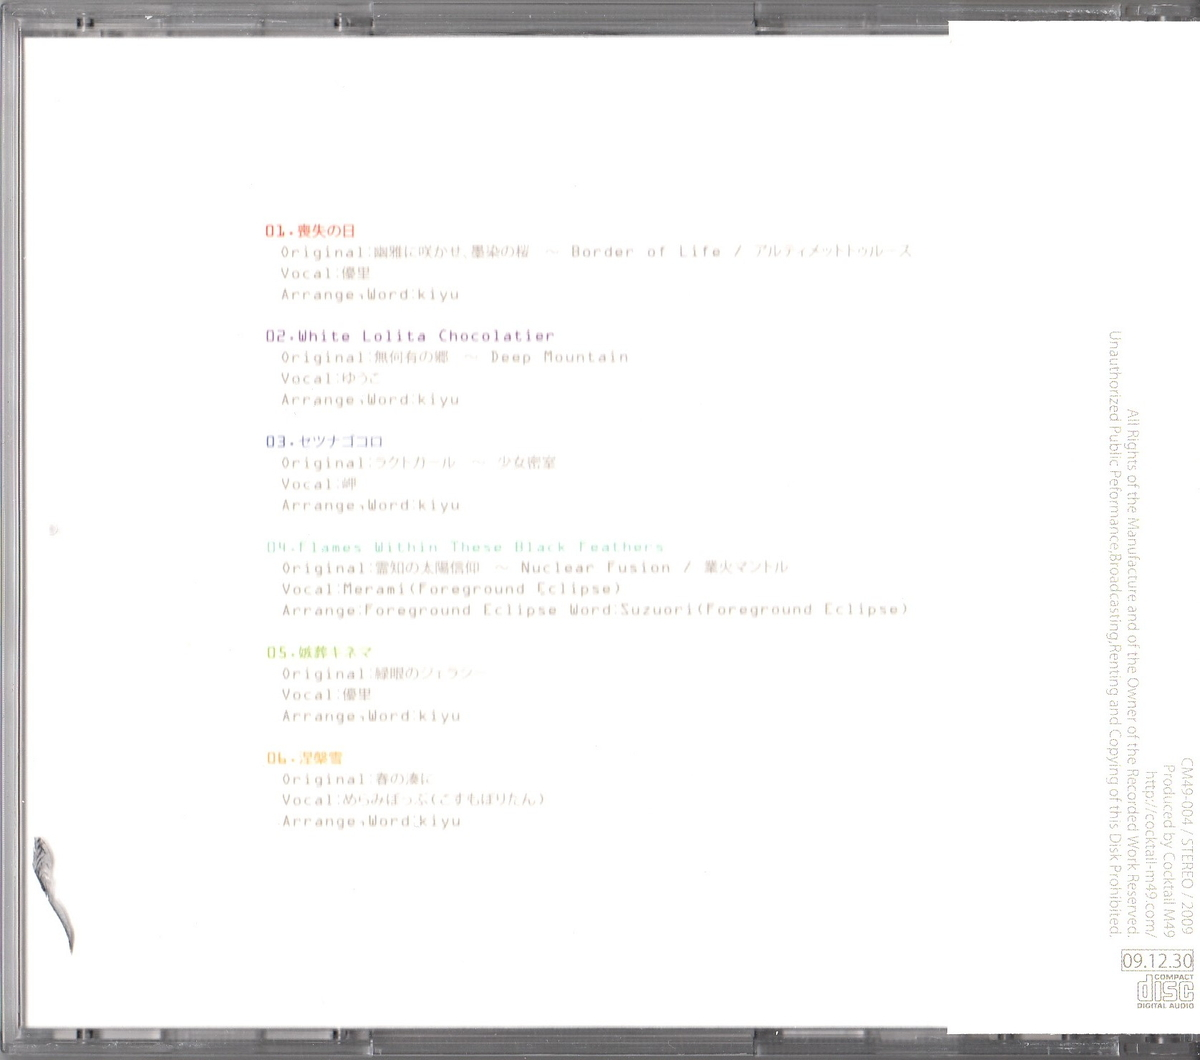 ★Cocktail M49:palette/Foreground Eclipse,めらみぽっぷ,東方アレンジ,ボーカル,ロック,ジャパメタ,メタル,女性Vo,同人音楽_画像2